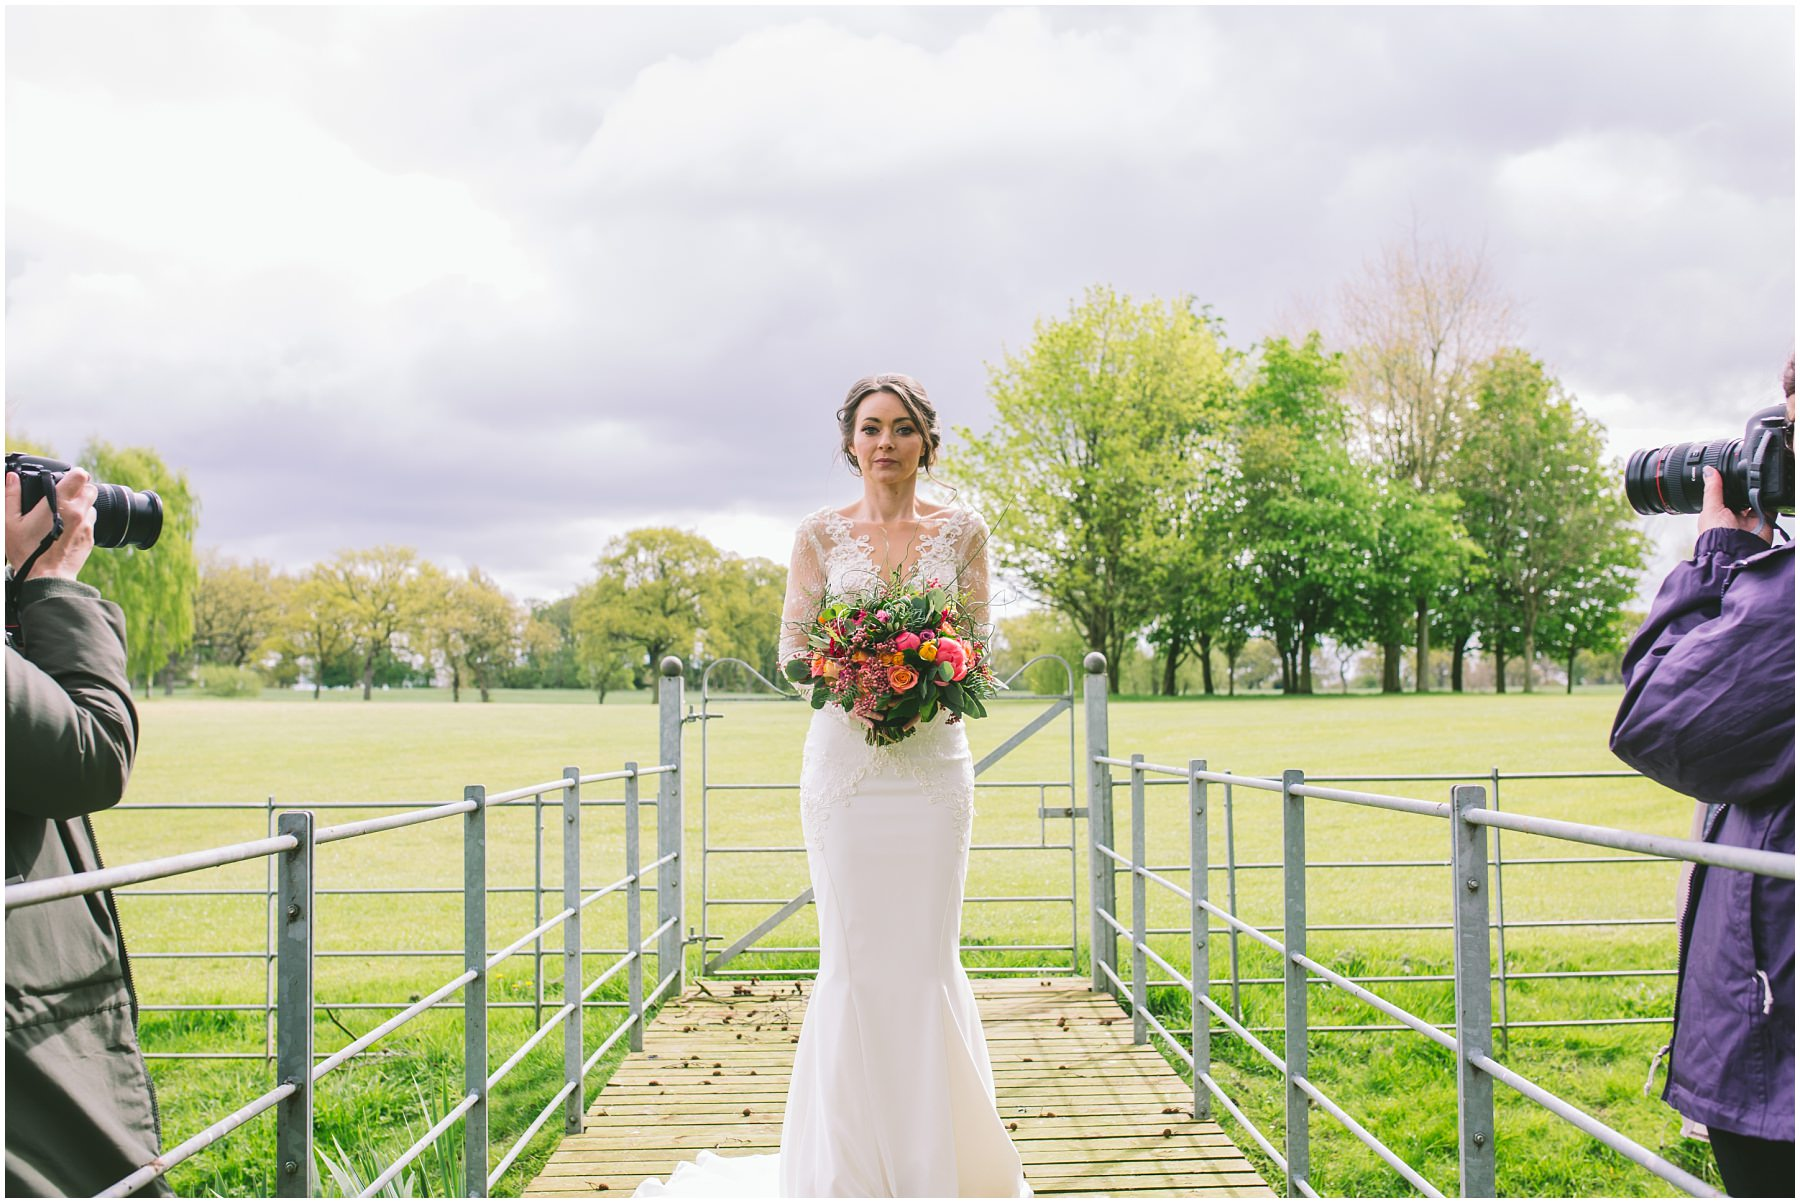 The bride holds her flowers as two photographers create images